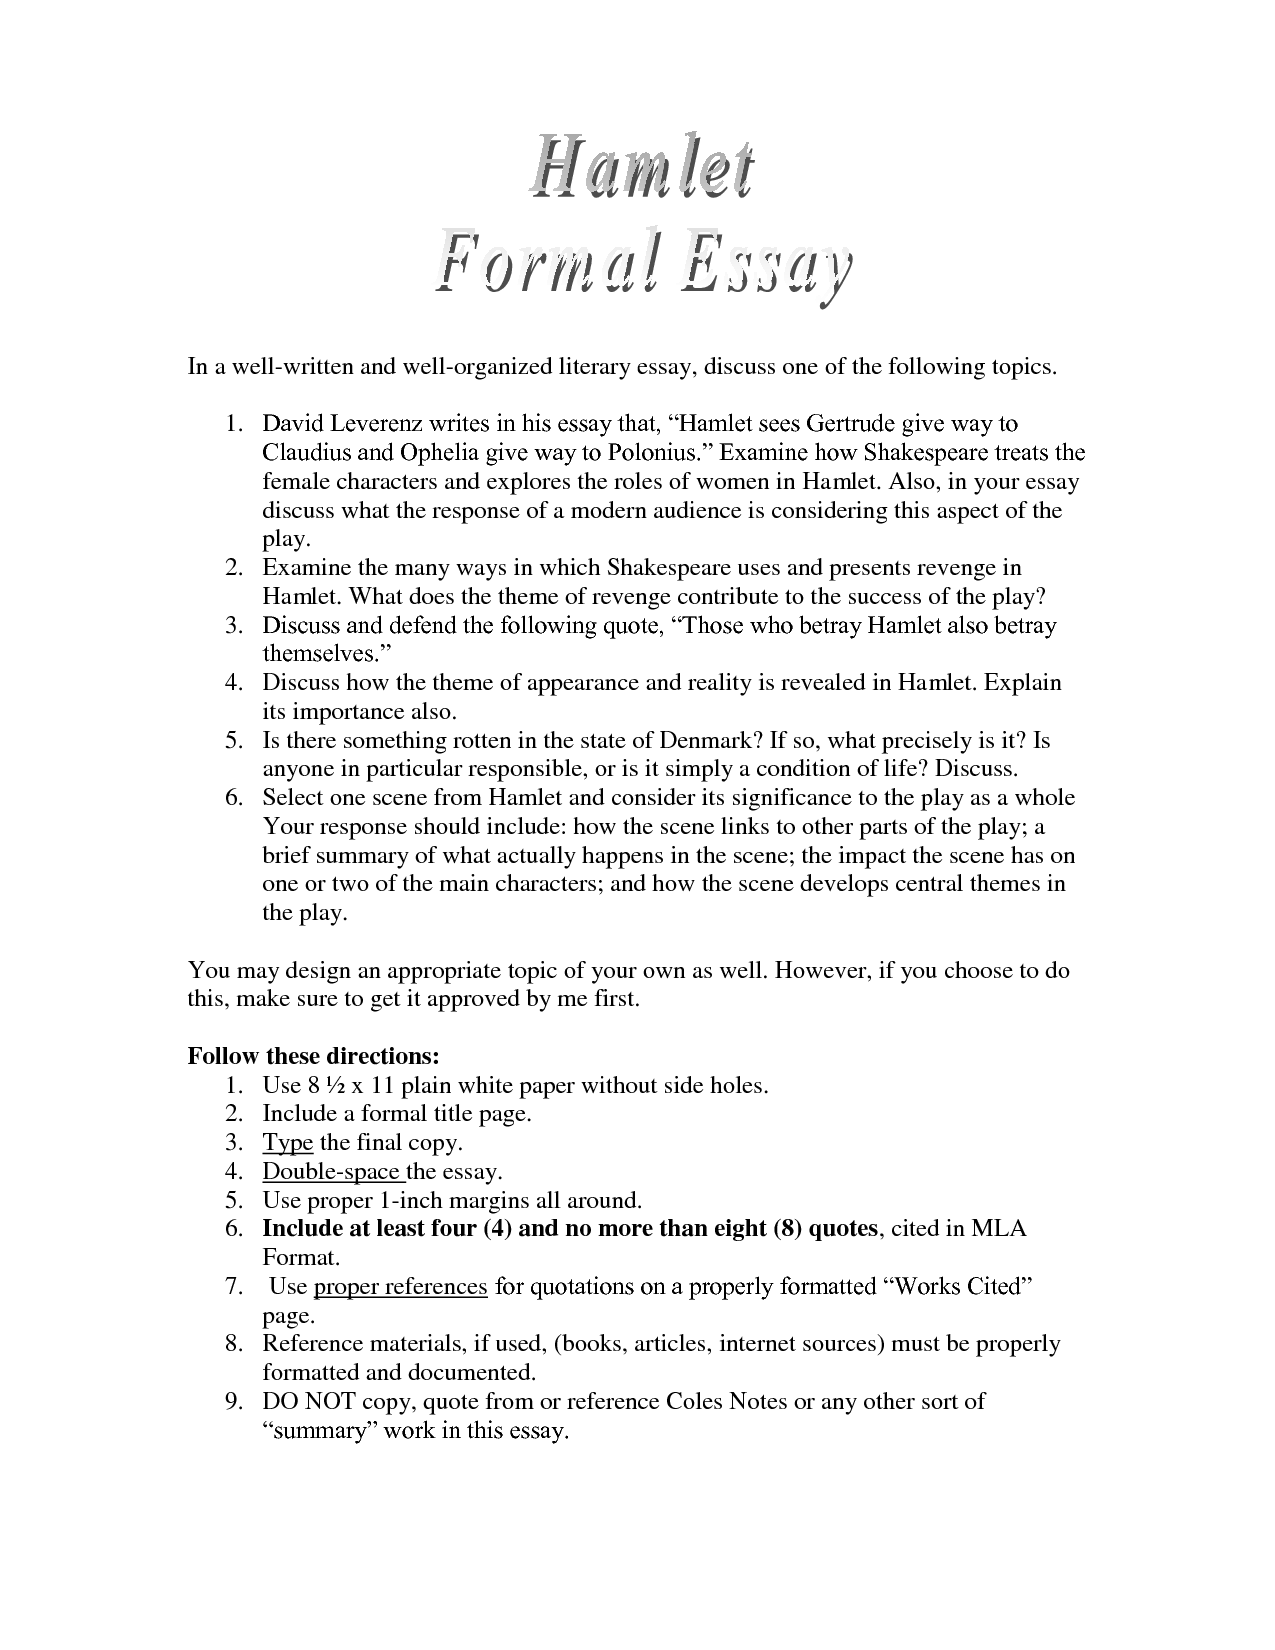 essays for hamlet Hamlet this essay hamlet and other 63,000+ term papers, college essay examples and free essays are available now on reviewessayscom autor: reviewessays • december.